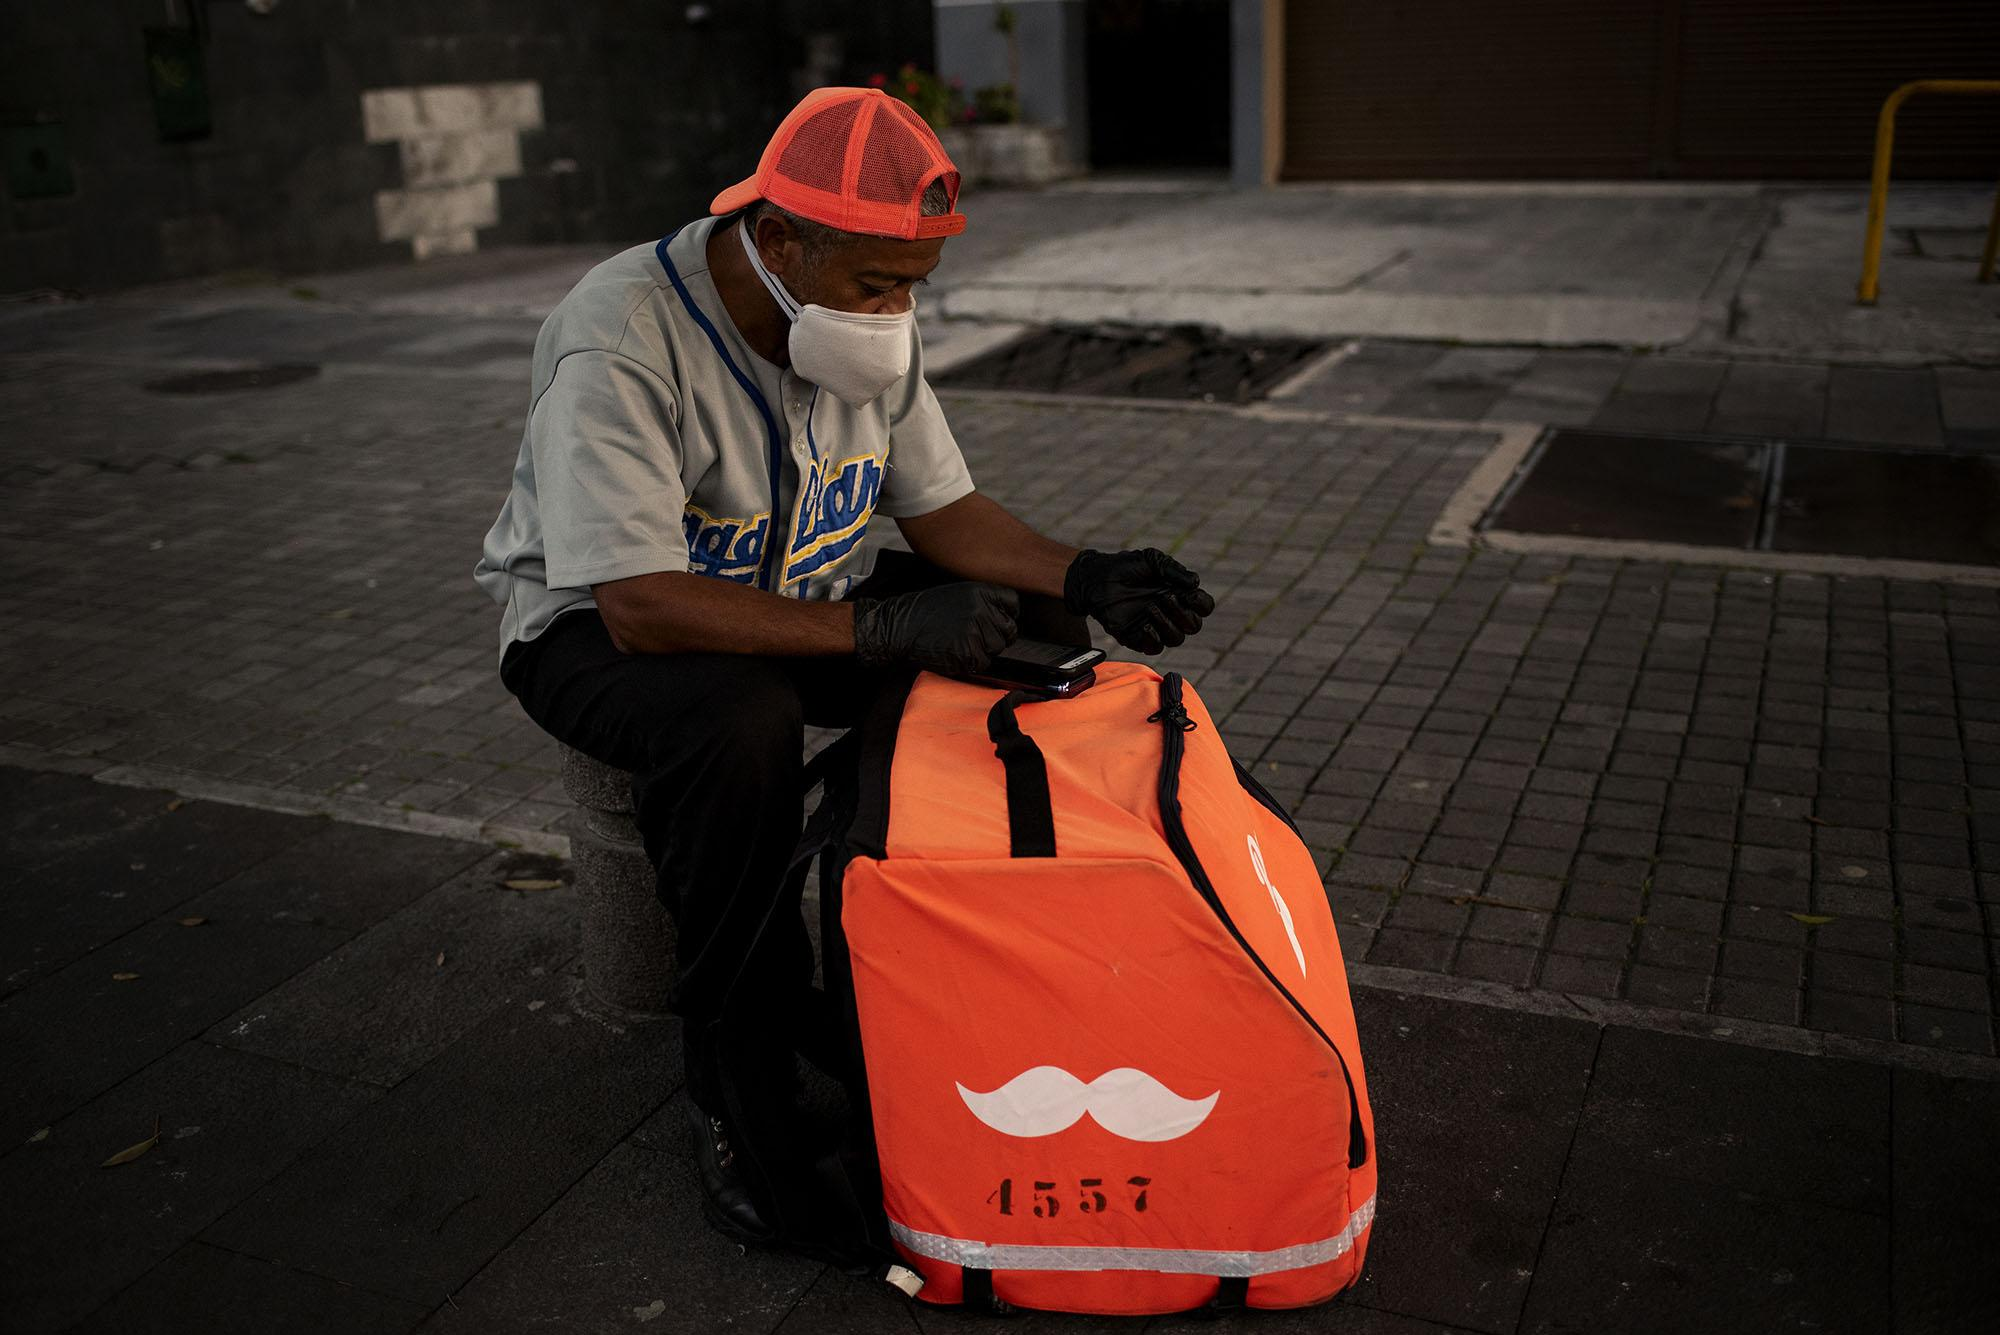 A home delivery worker waits for your next order on the streets near restaurants on Thursday, May 7, 2020 in Quito - Ecuador. Johis Alarcón for The New York Times